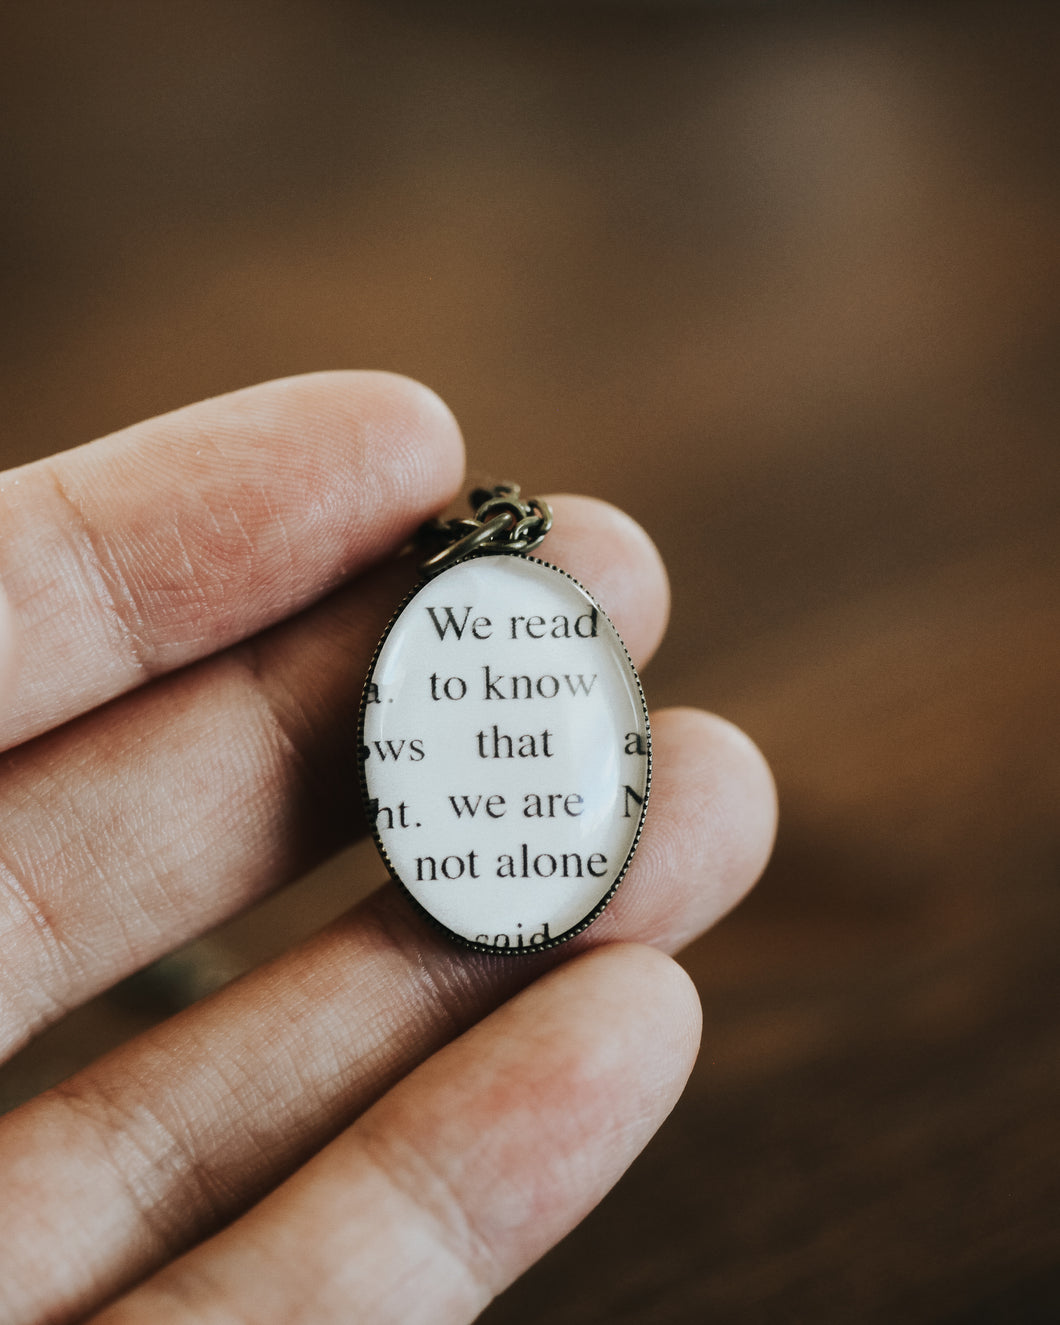 Book Page Necklace - We read to know that we are not alone